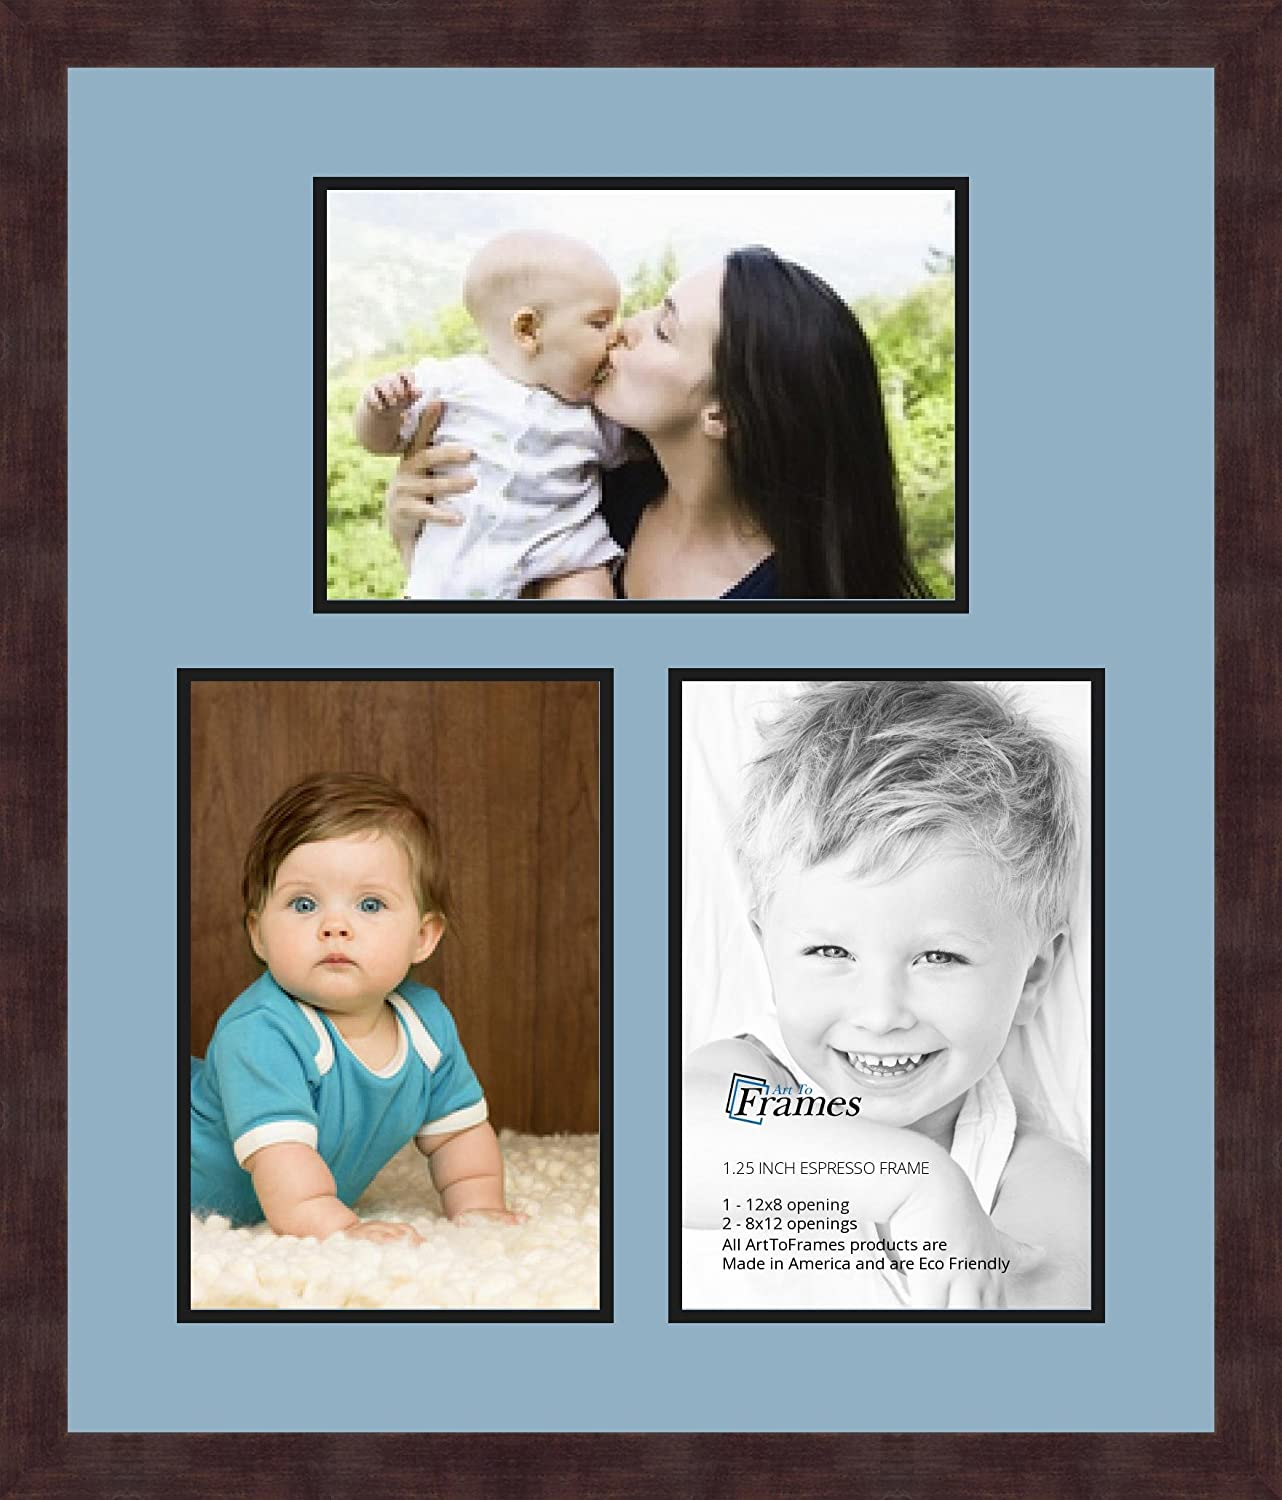 Art to Frames Double-Multimat-677-716//89-FRBW26061 Collage Frame Photo Mat Double Mat with 3-8x12 Openings and Espresso Frame